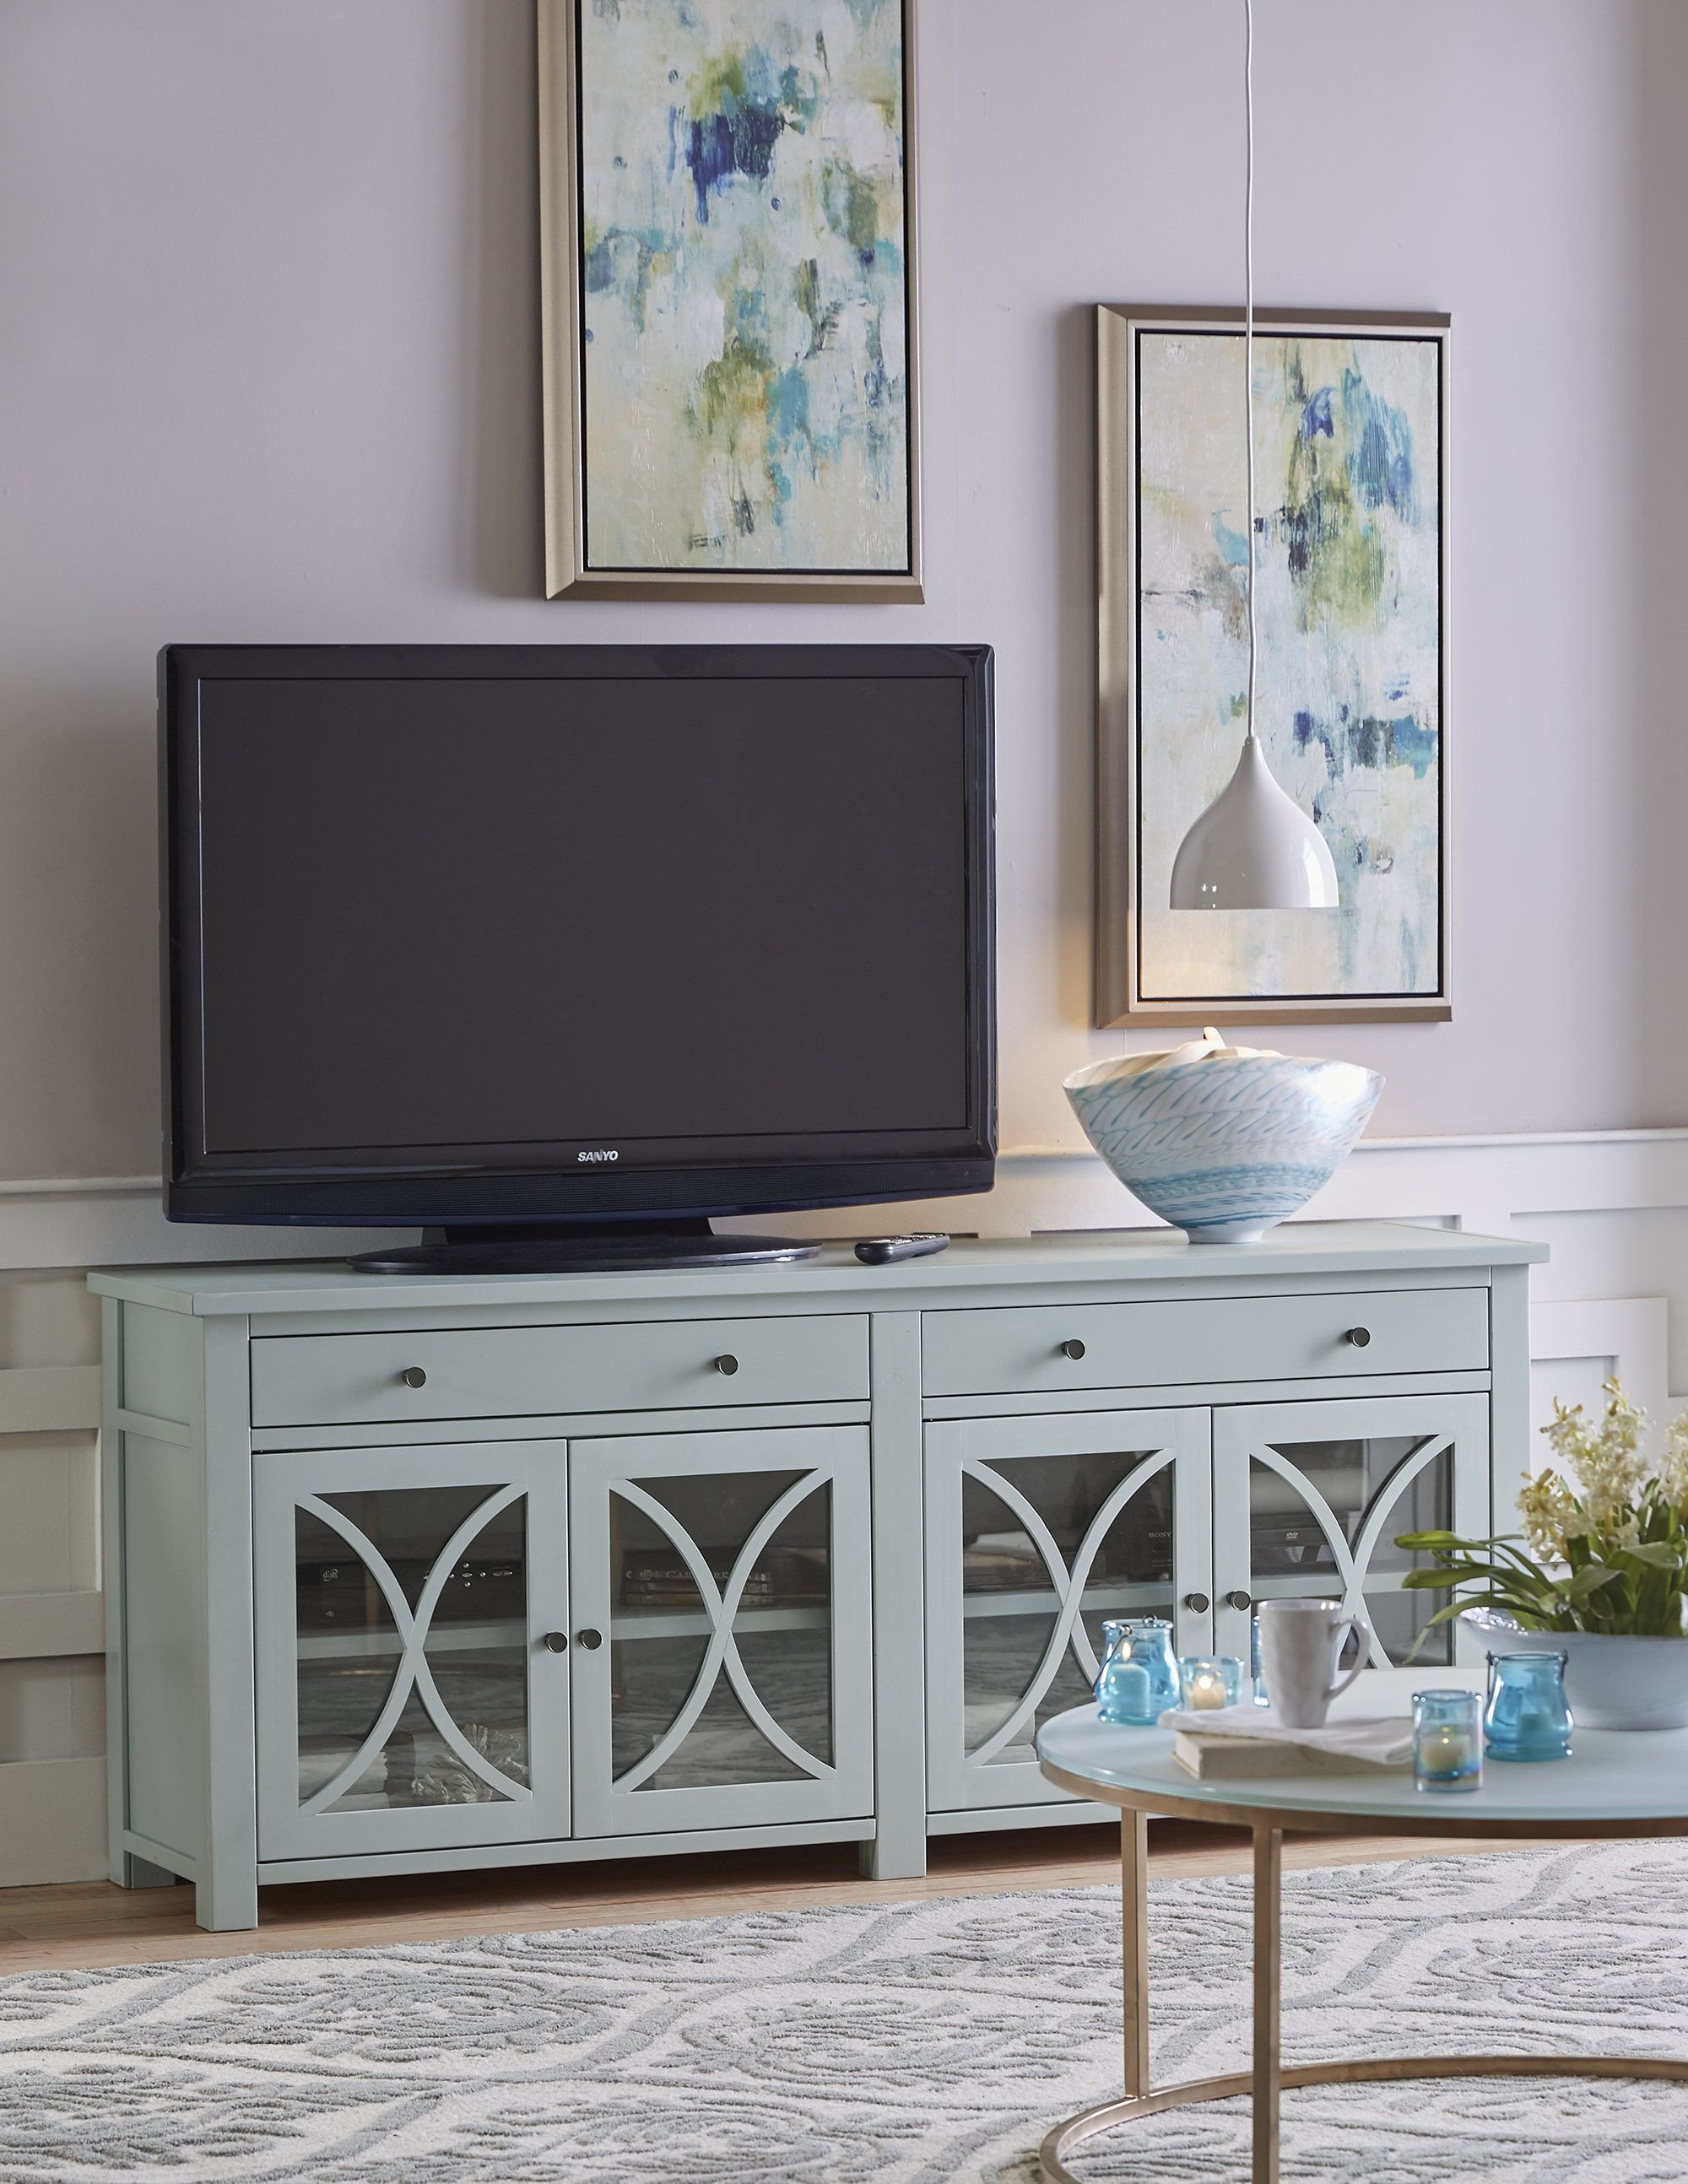 Tv Height In Bedroom Elegant Salinas Tv Console Choose Size